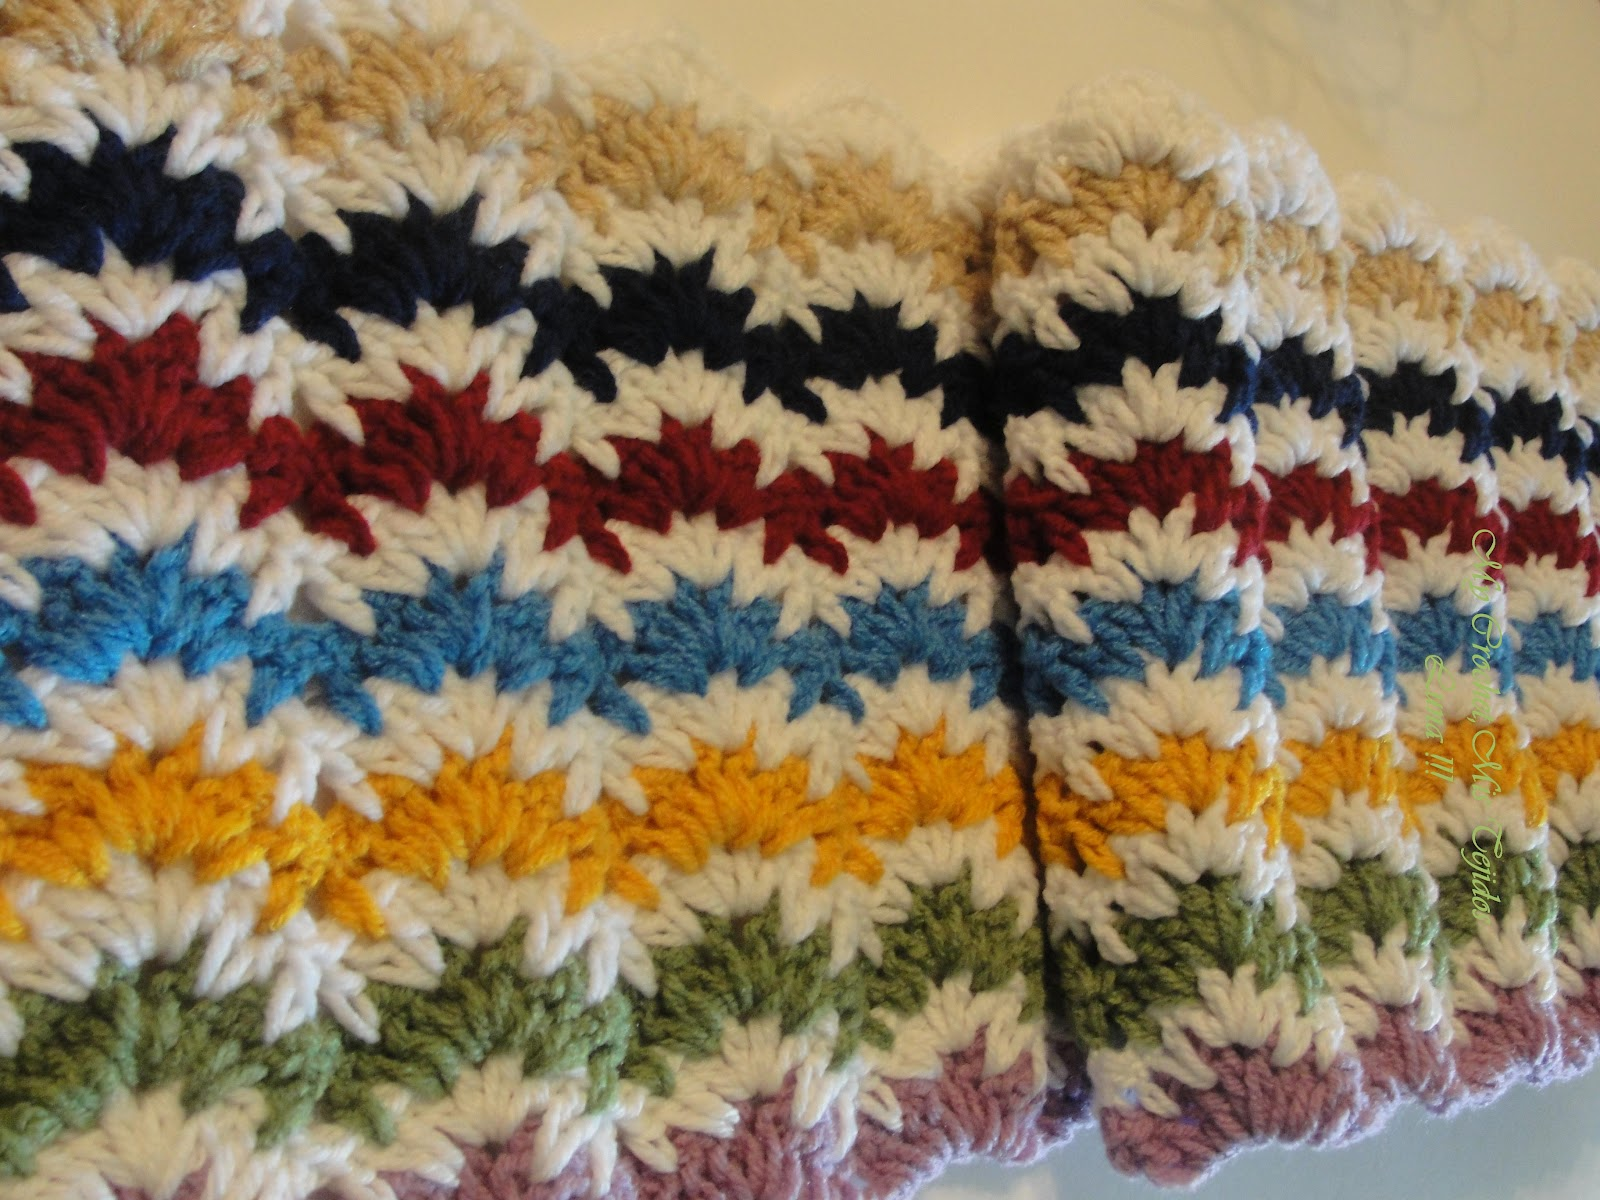 Crochet Stitches Ripple : My Crochet , Mis Tejidos by Luna: Ripple Vintage Stitches in a Bed ...